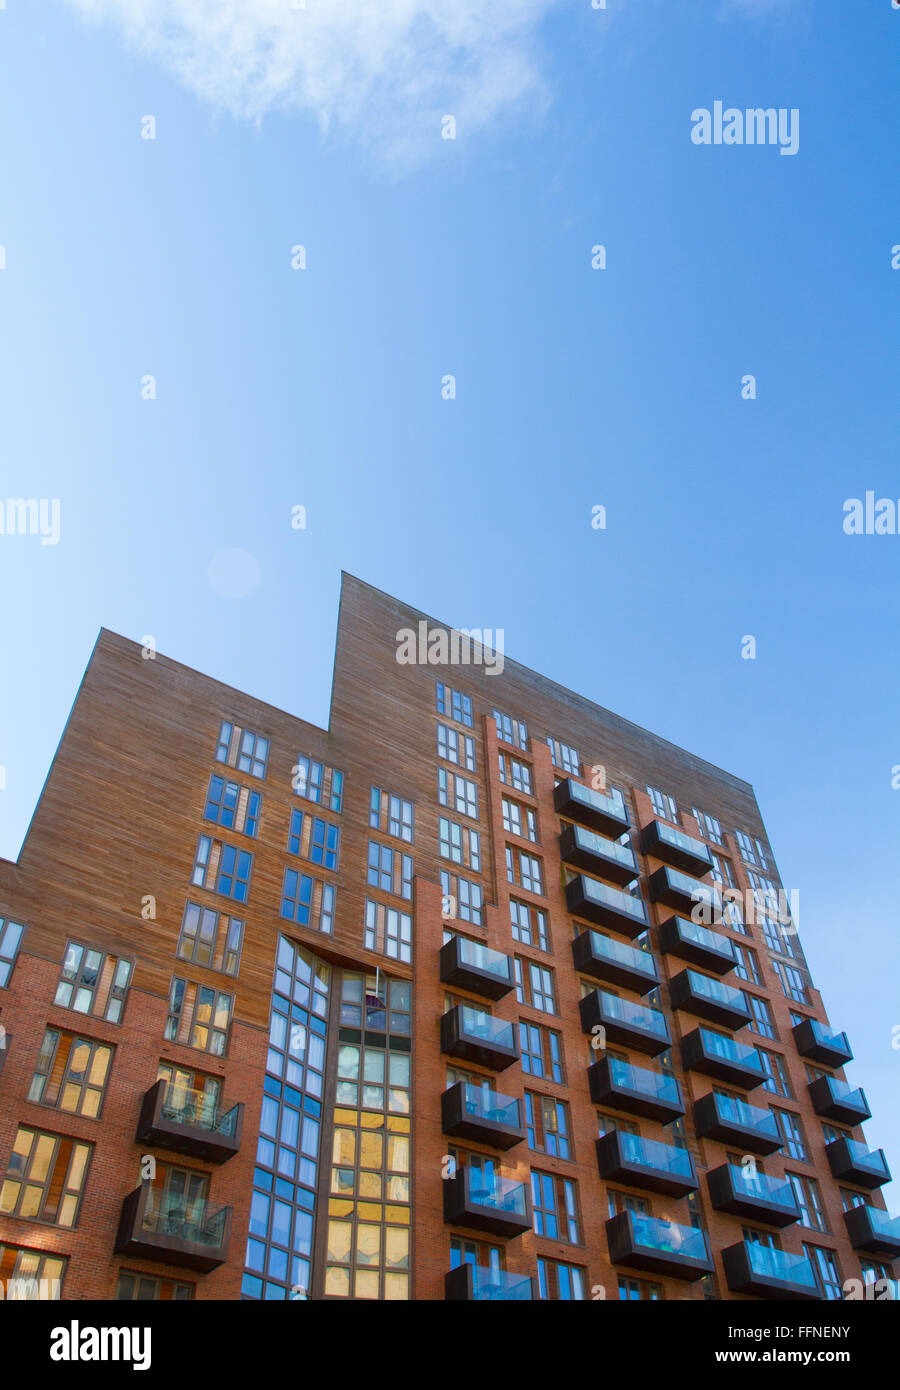 A view from the ground looking up to a tall skyscraper under a blue sky. Angular lines of architecture with uniformity. - Stock Image